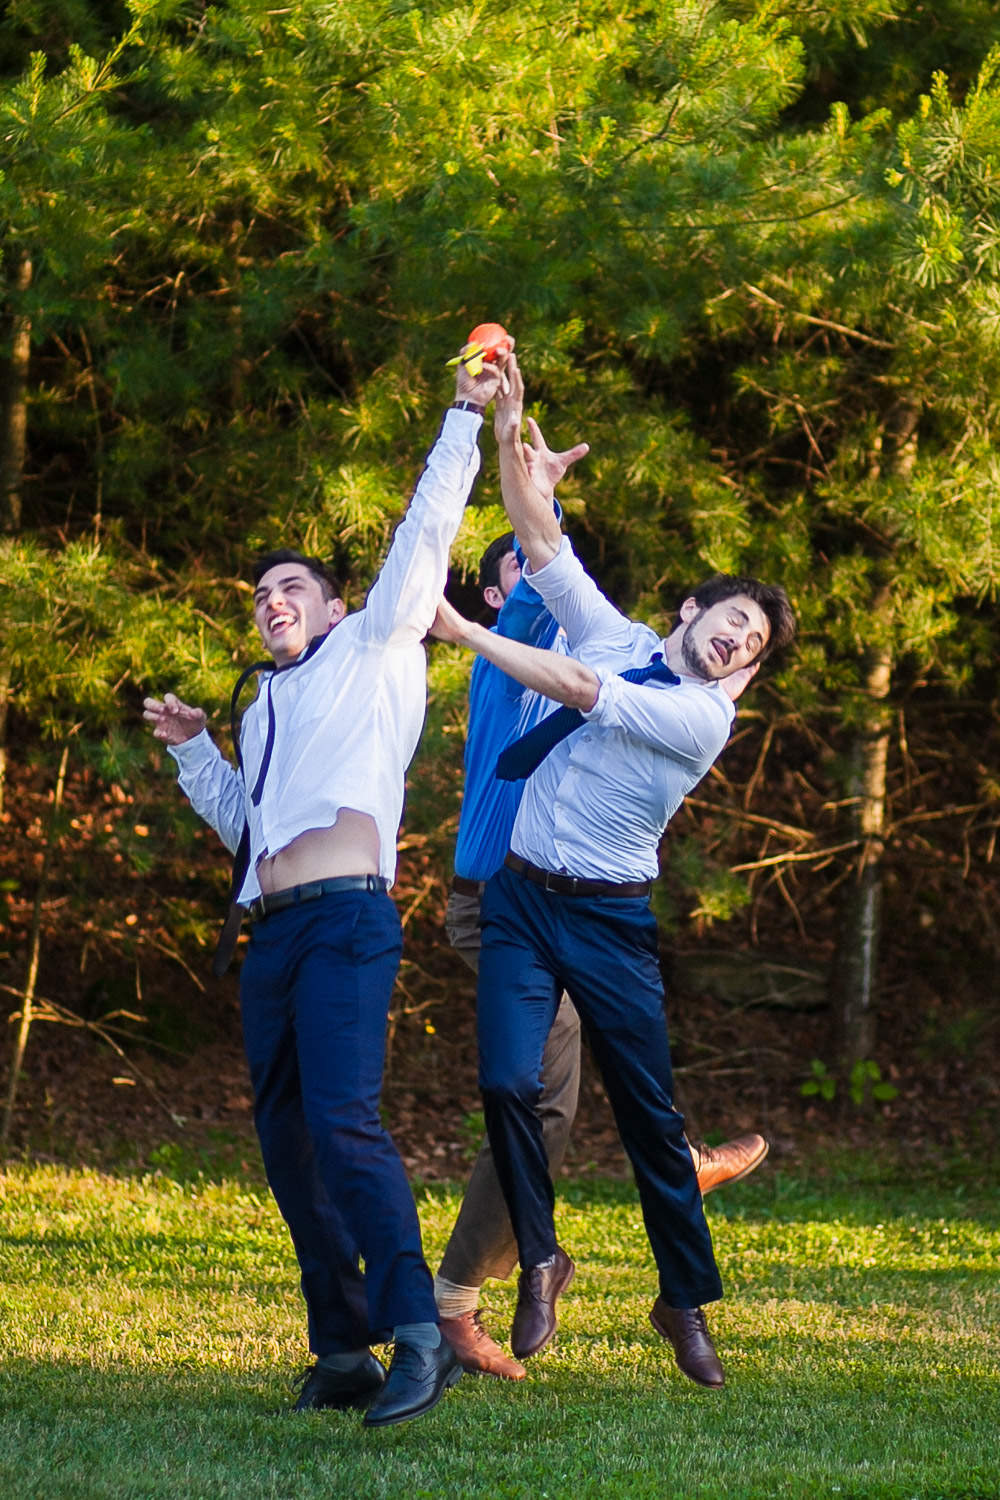 wedding lawn games at hartmans herb farm weddings,